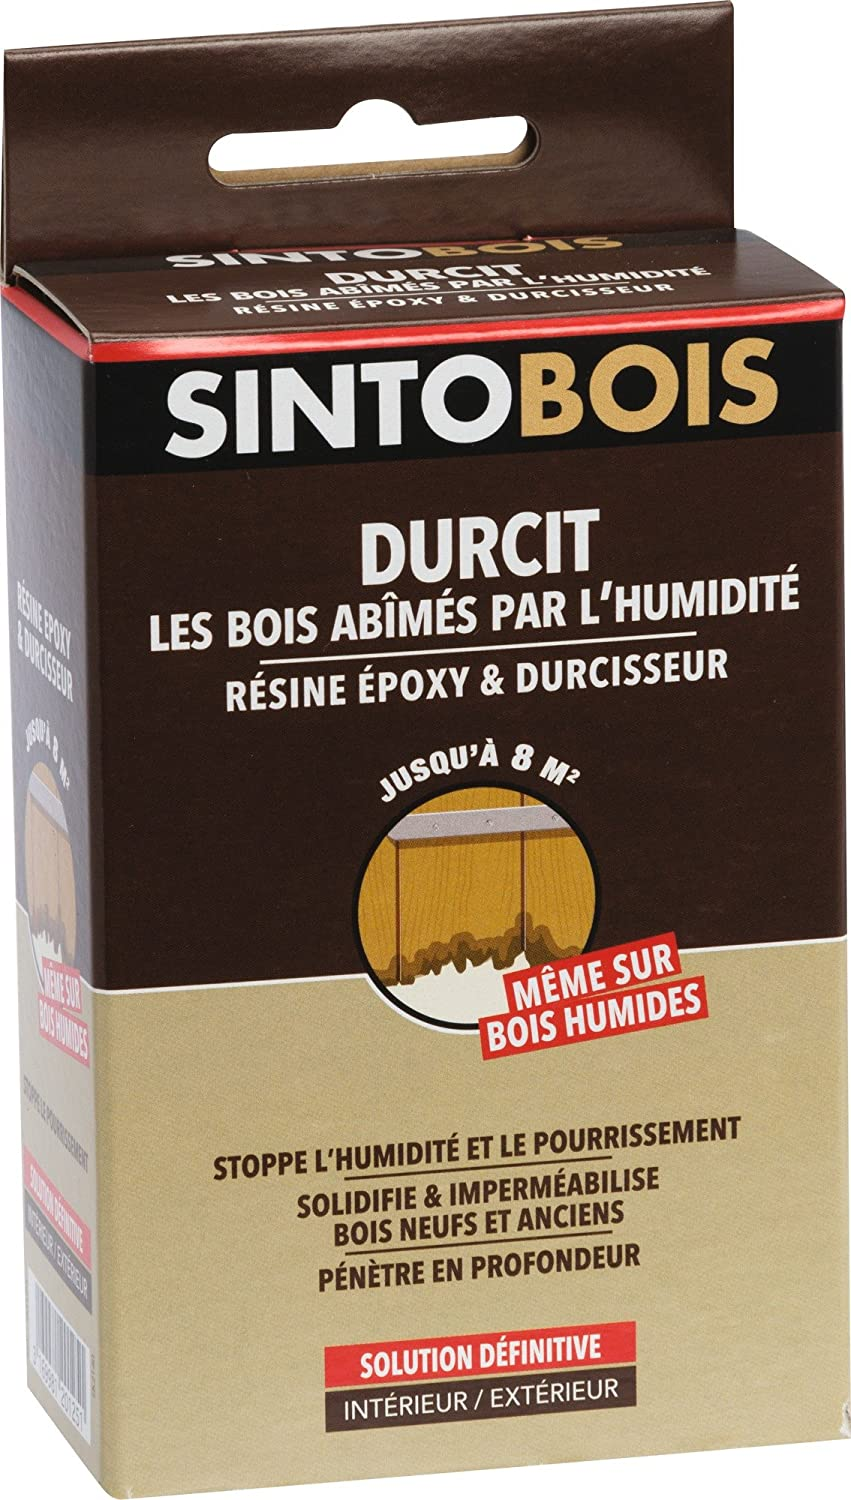 Grand Stunning Durcisseur Bois Pourri Kit With Mastic Bois. Conception